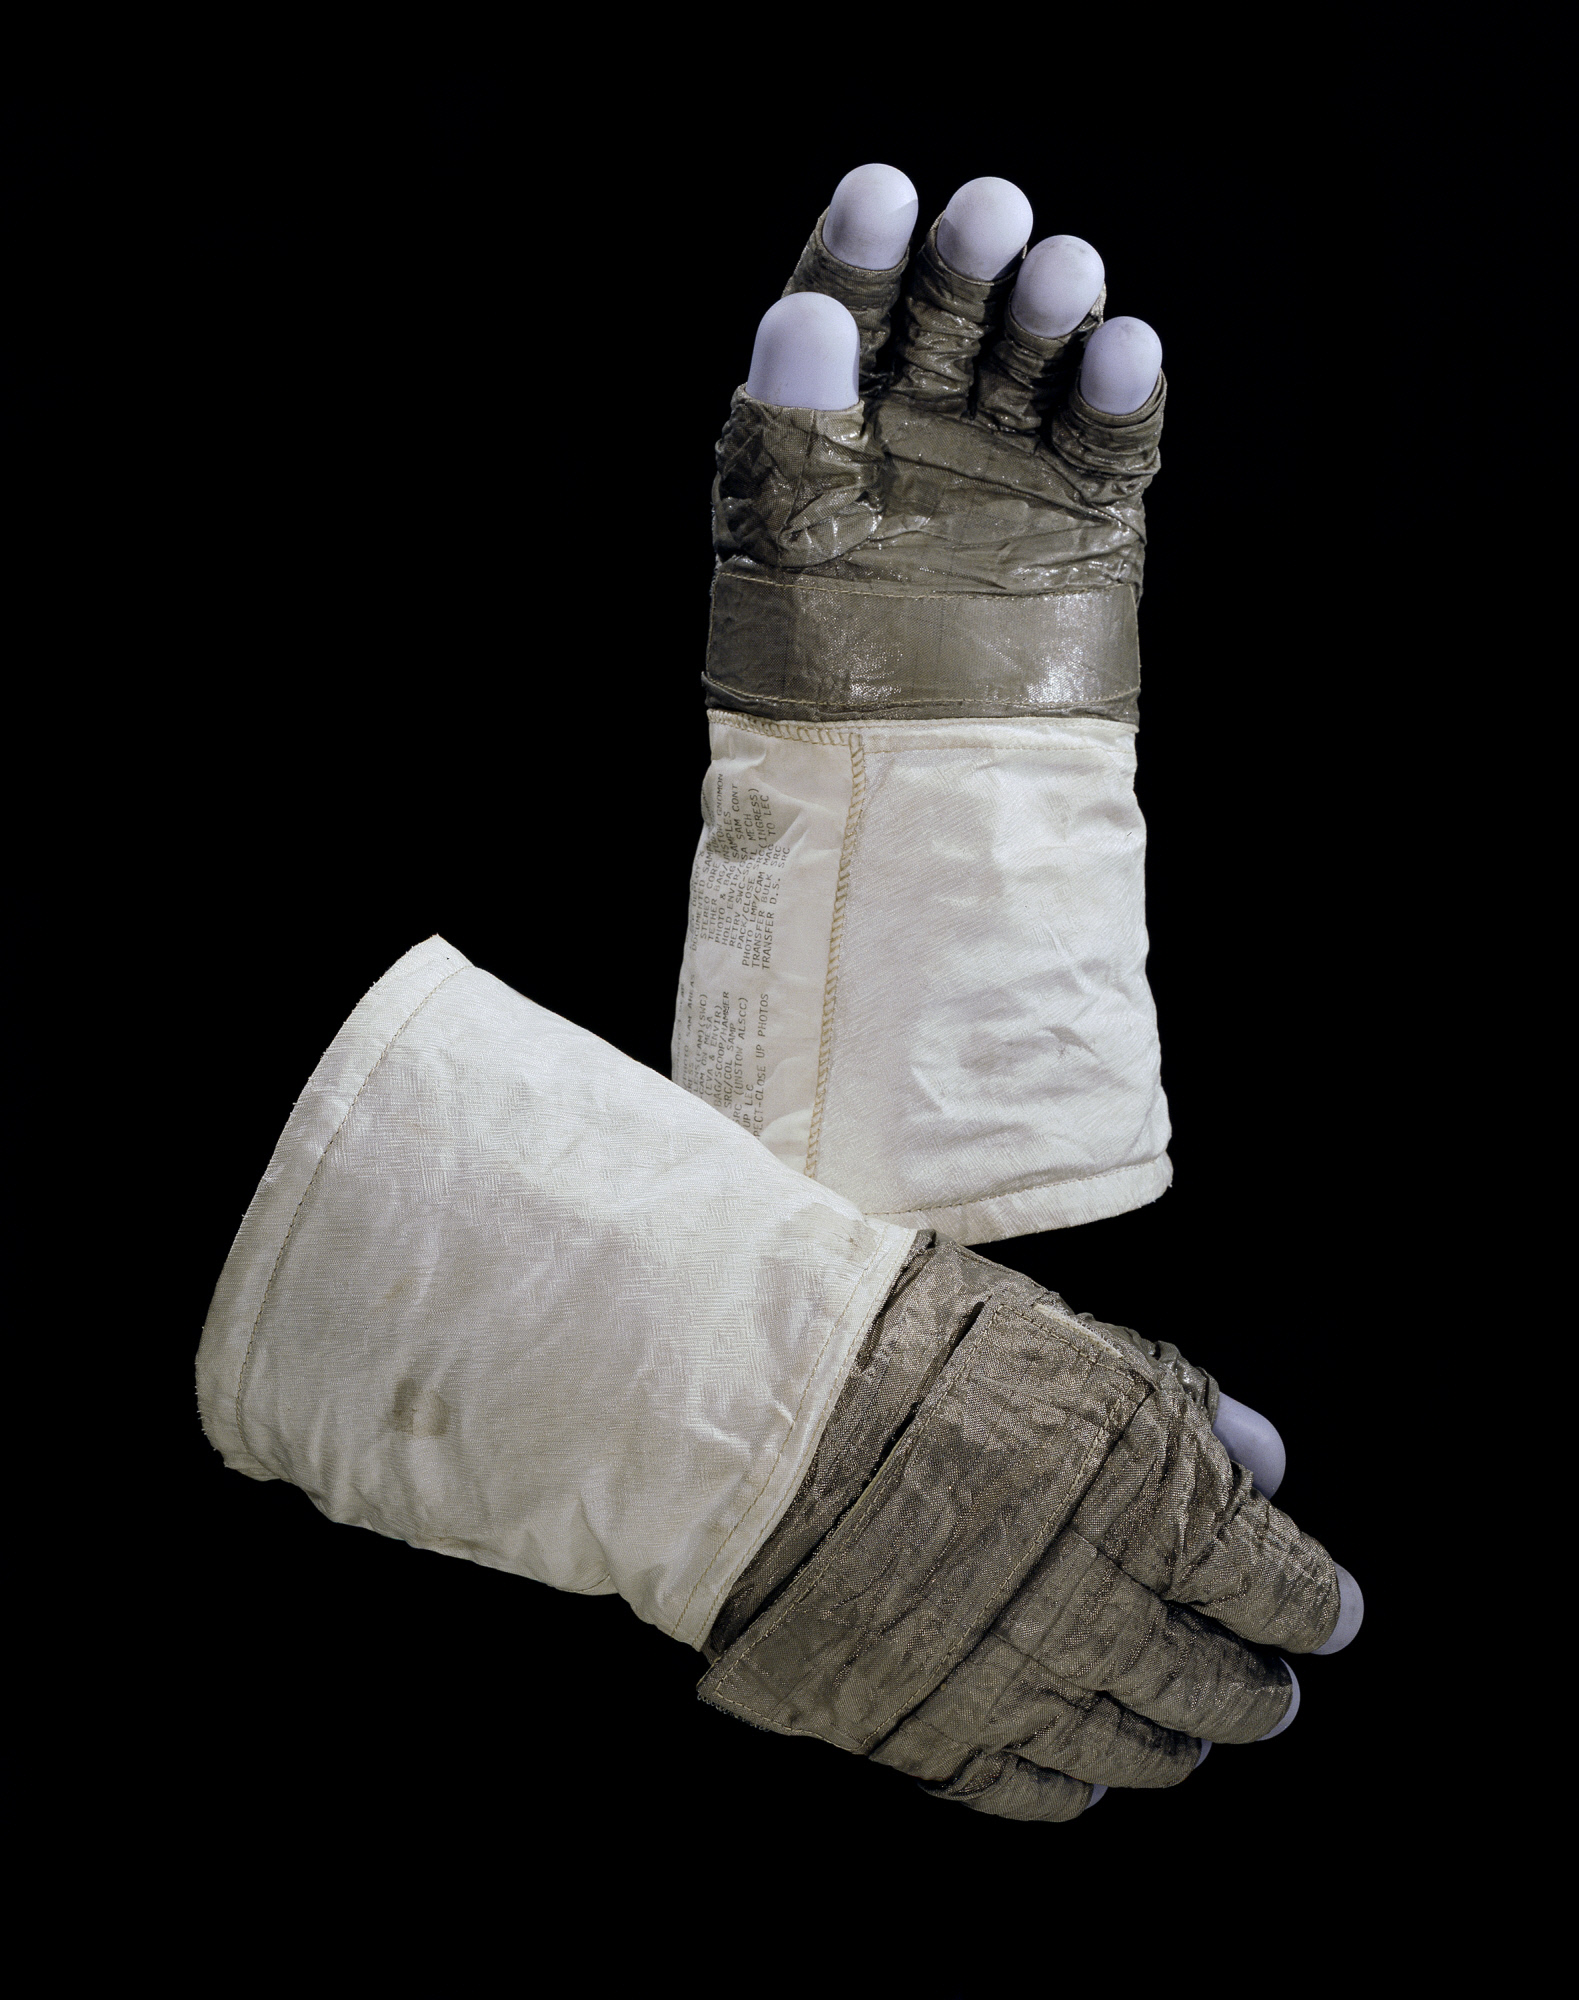 Astronaut Gloves - Pics about space